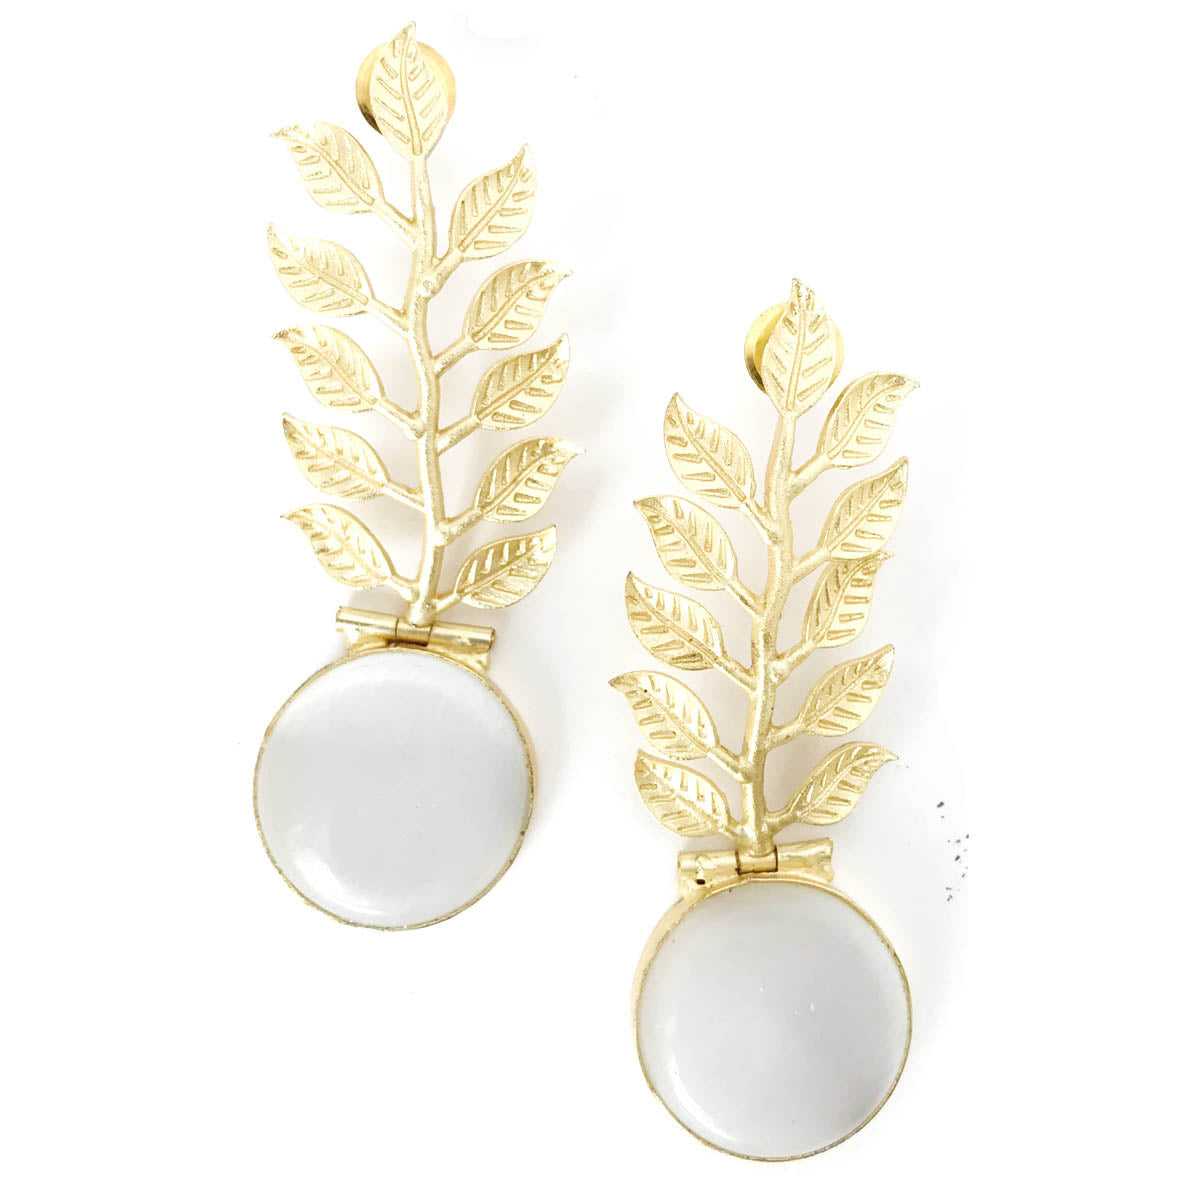 Moonstone with Golden Leaf Stud